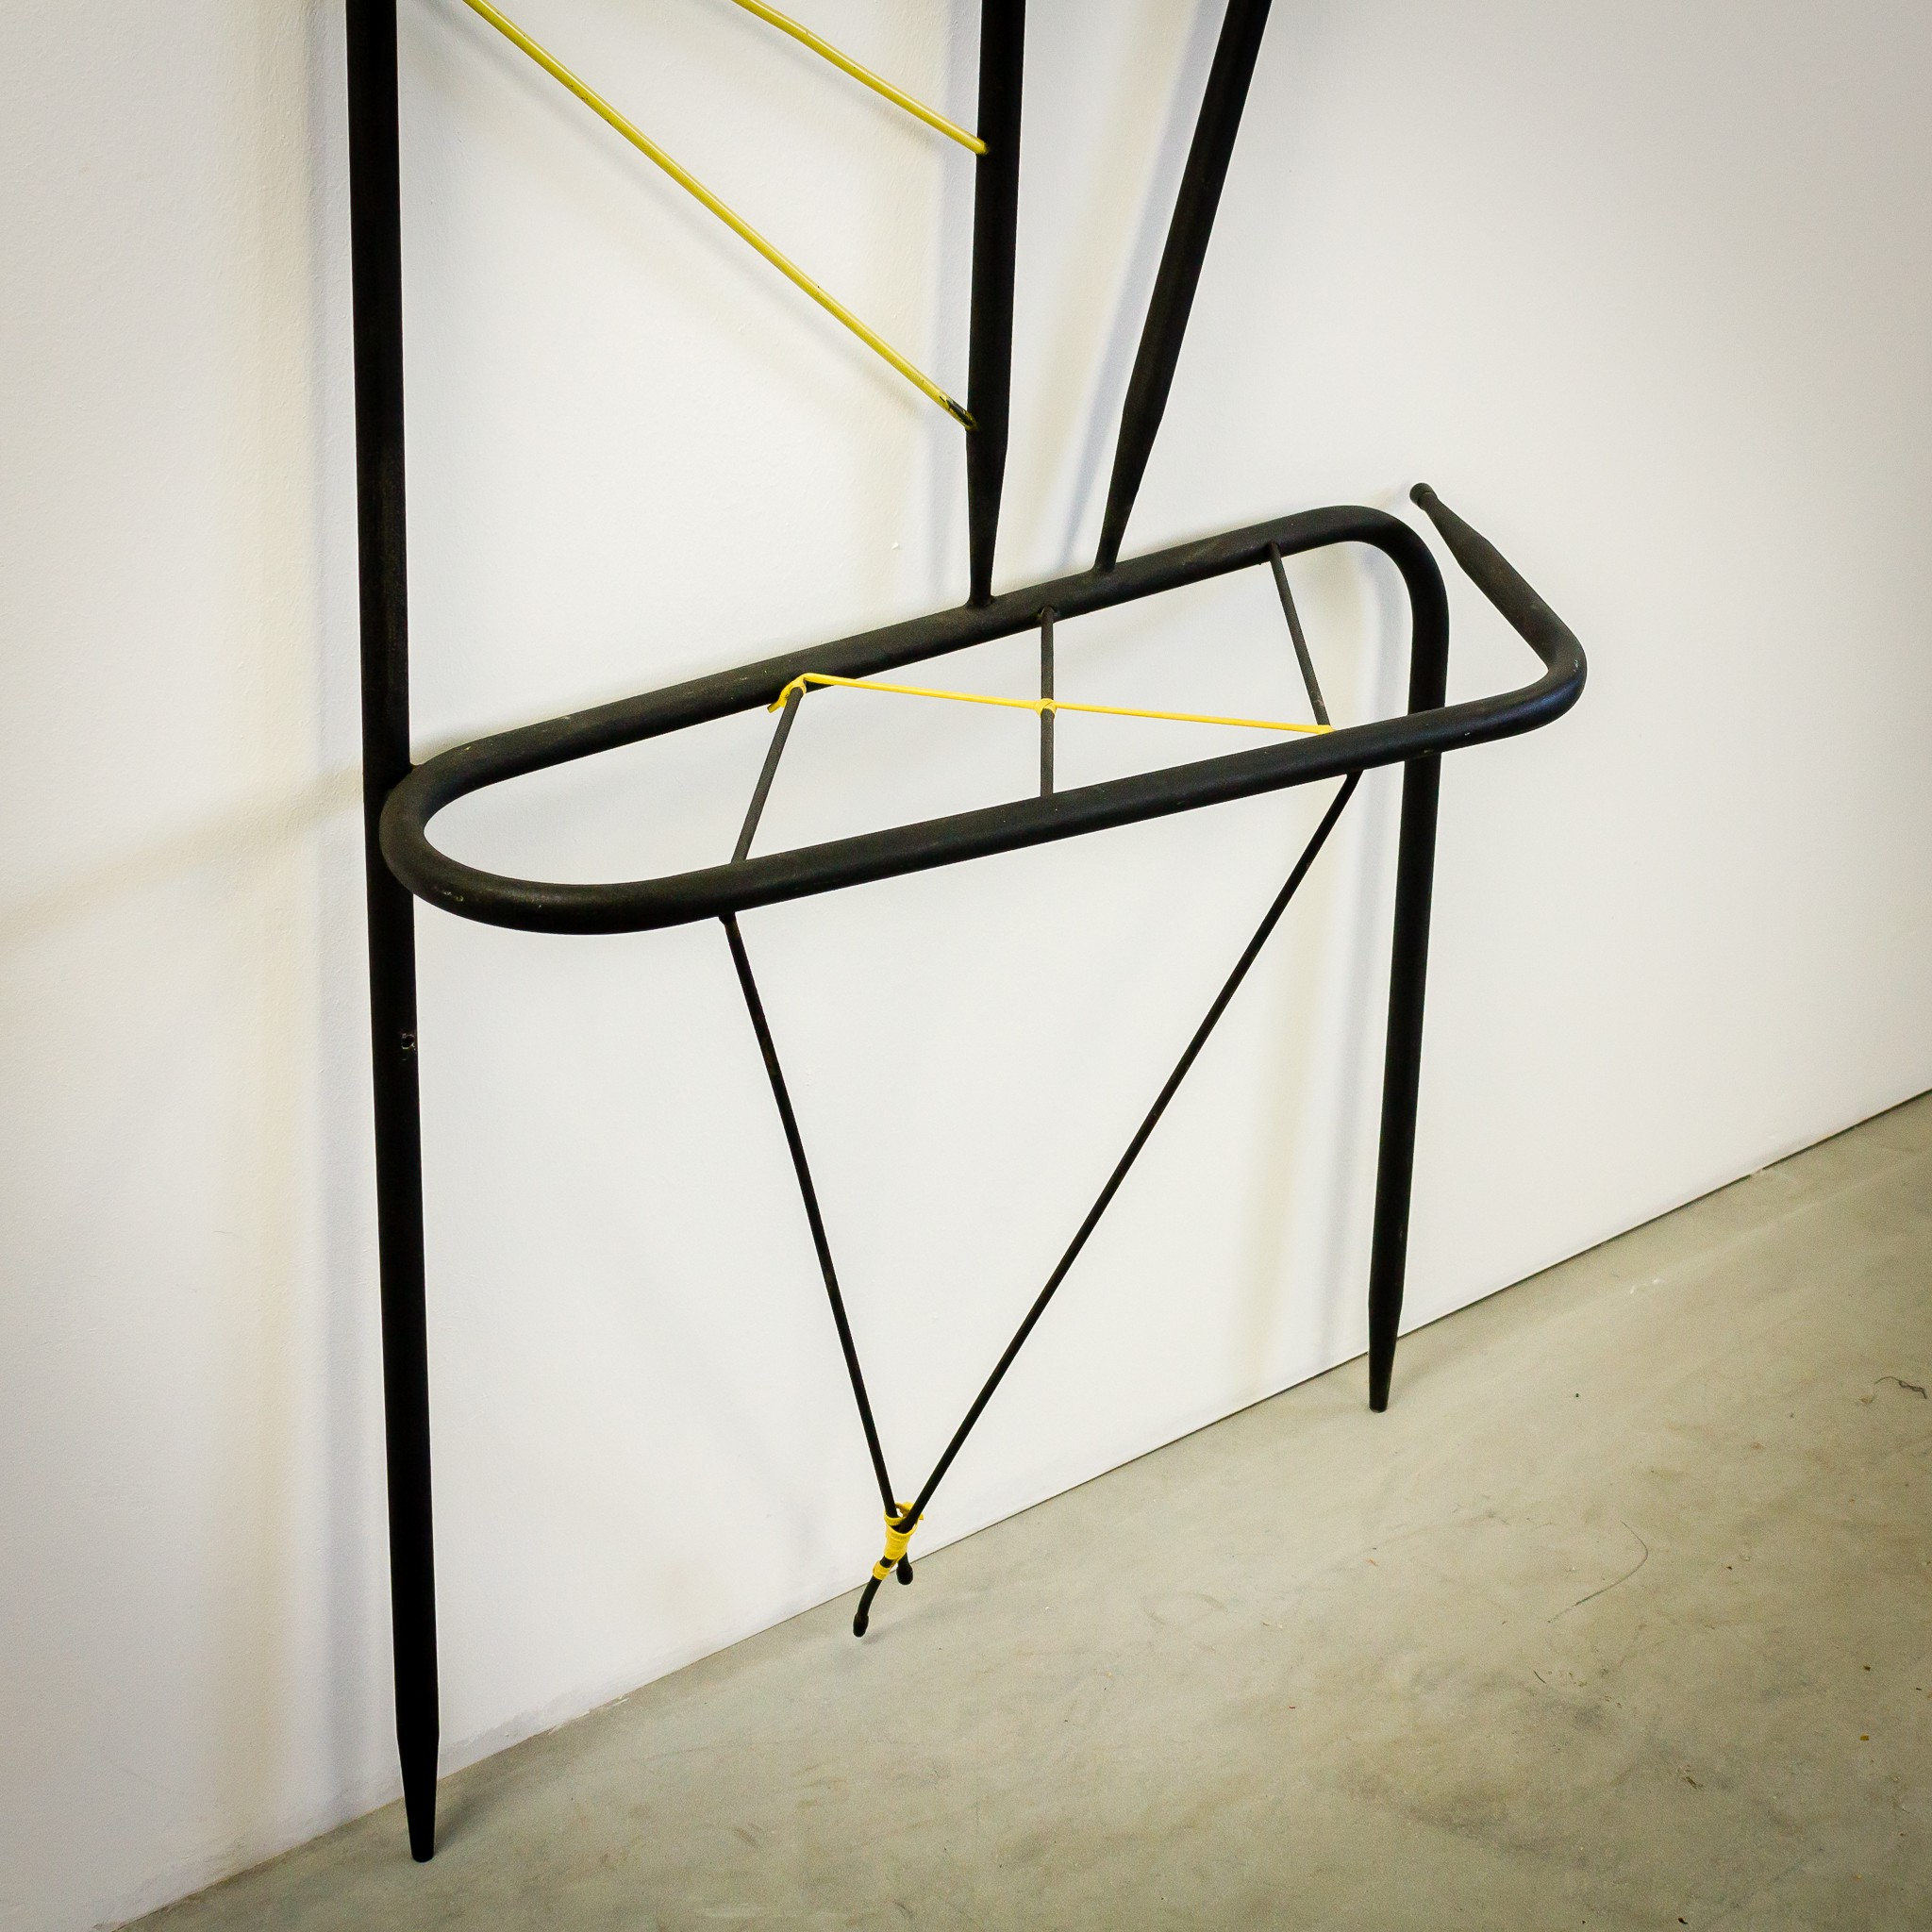 tjerk reijenga for metal pilastro coat rack by perforated sale